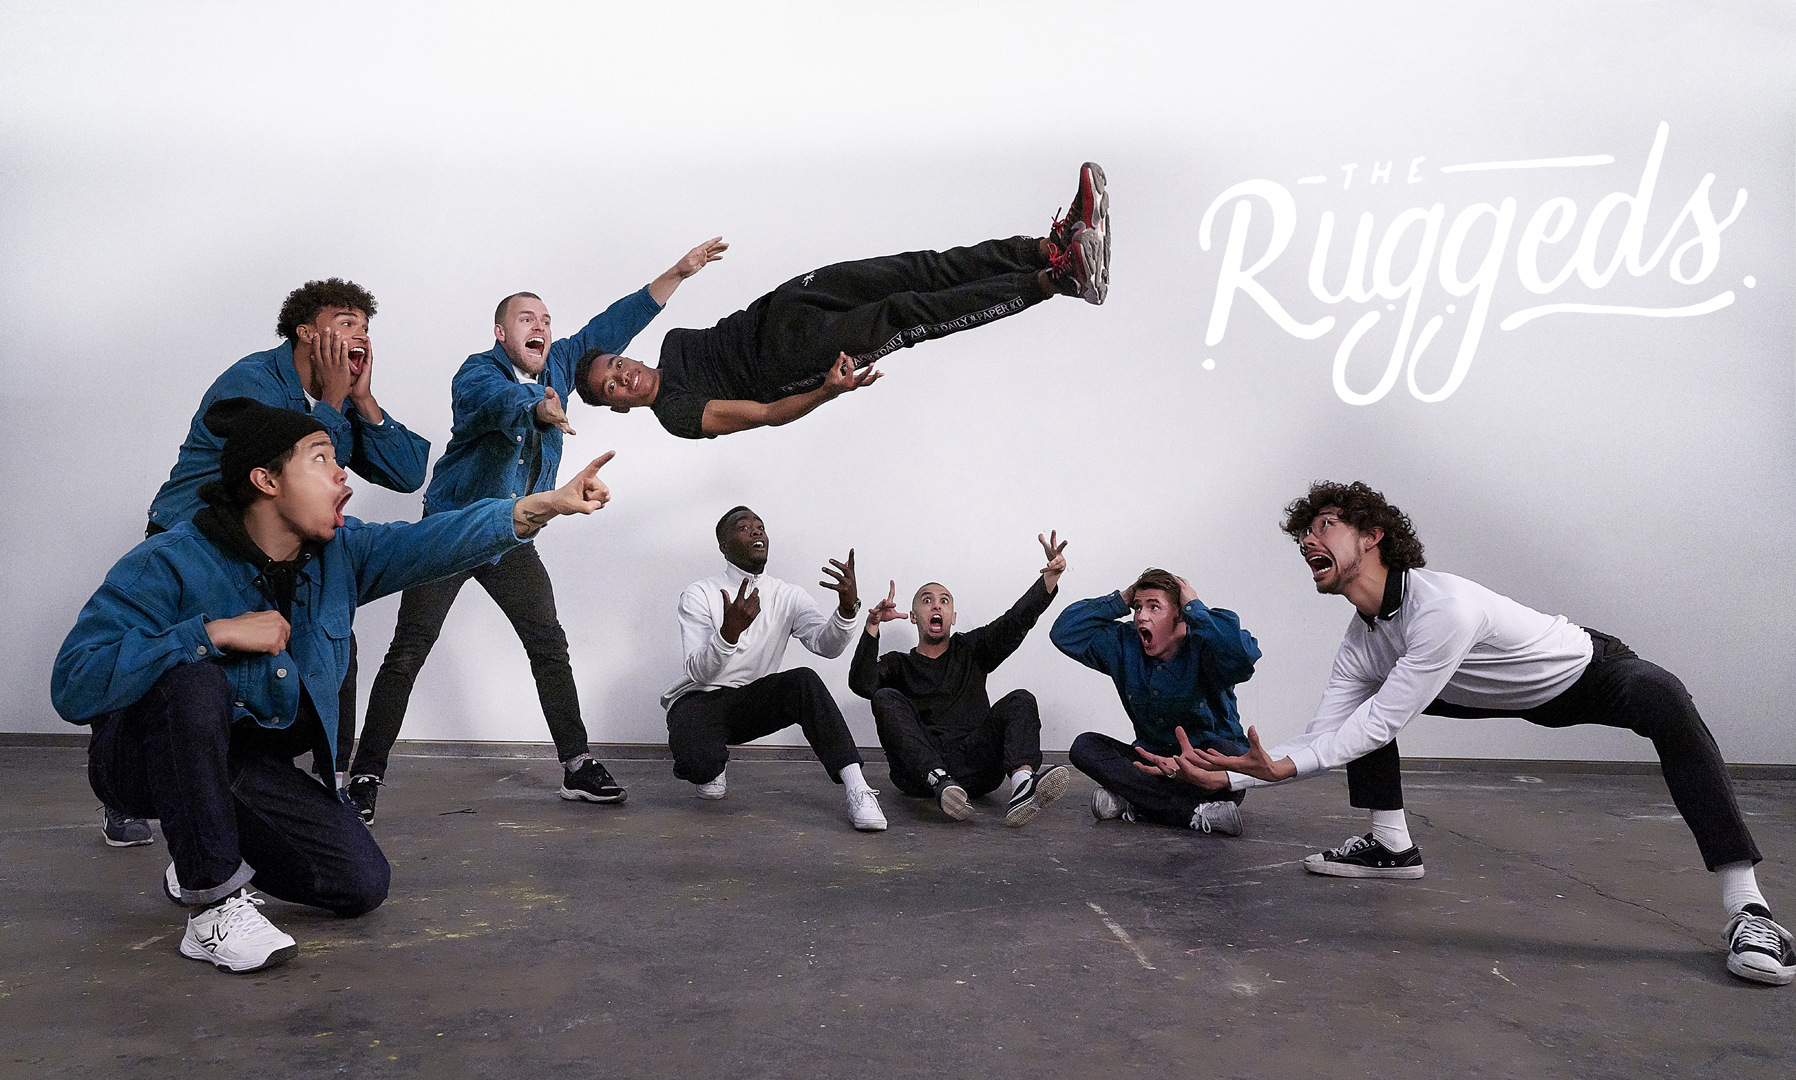 The Ruggeds breakdance crew